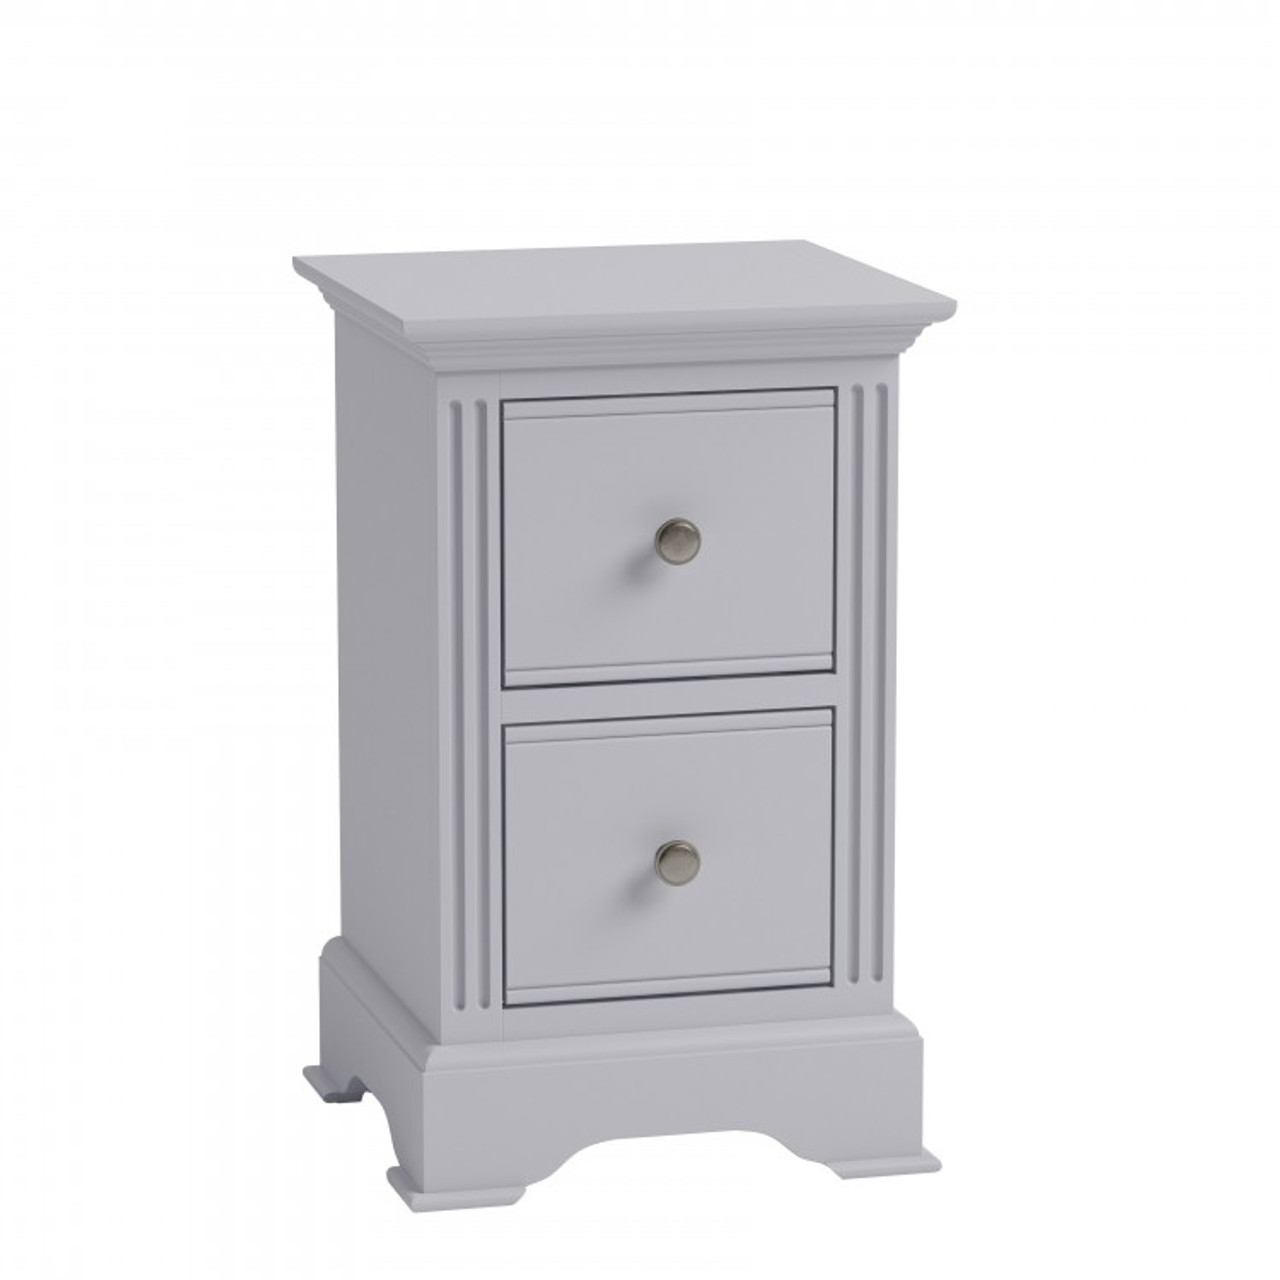 Picture of: Torridge 2 Drawer Small Bedside Table Bpg Grey My Furniture Store Furniture And Bedding Super Store Australia